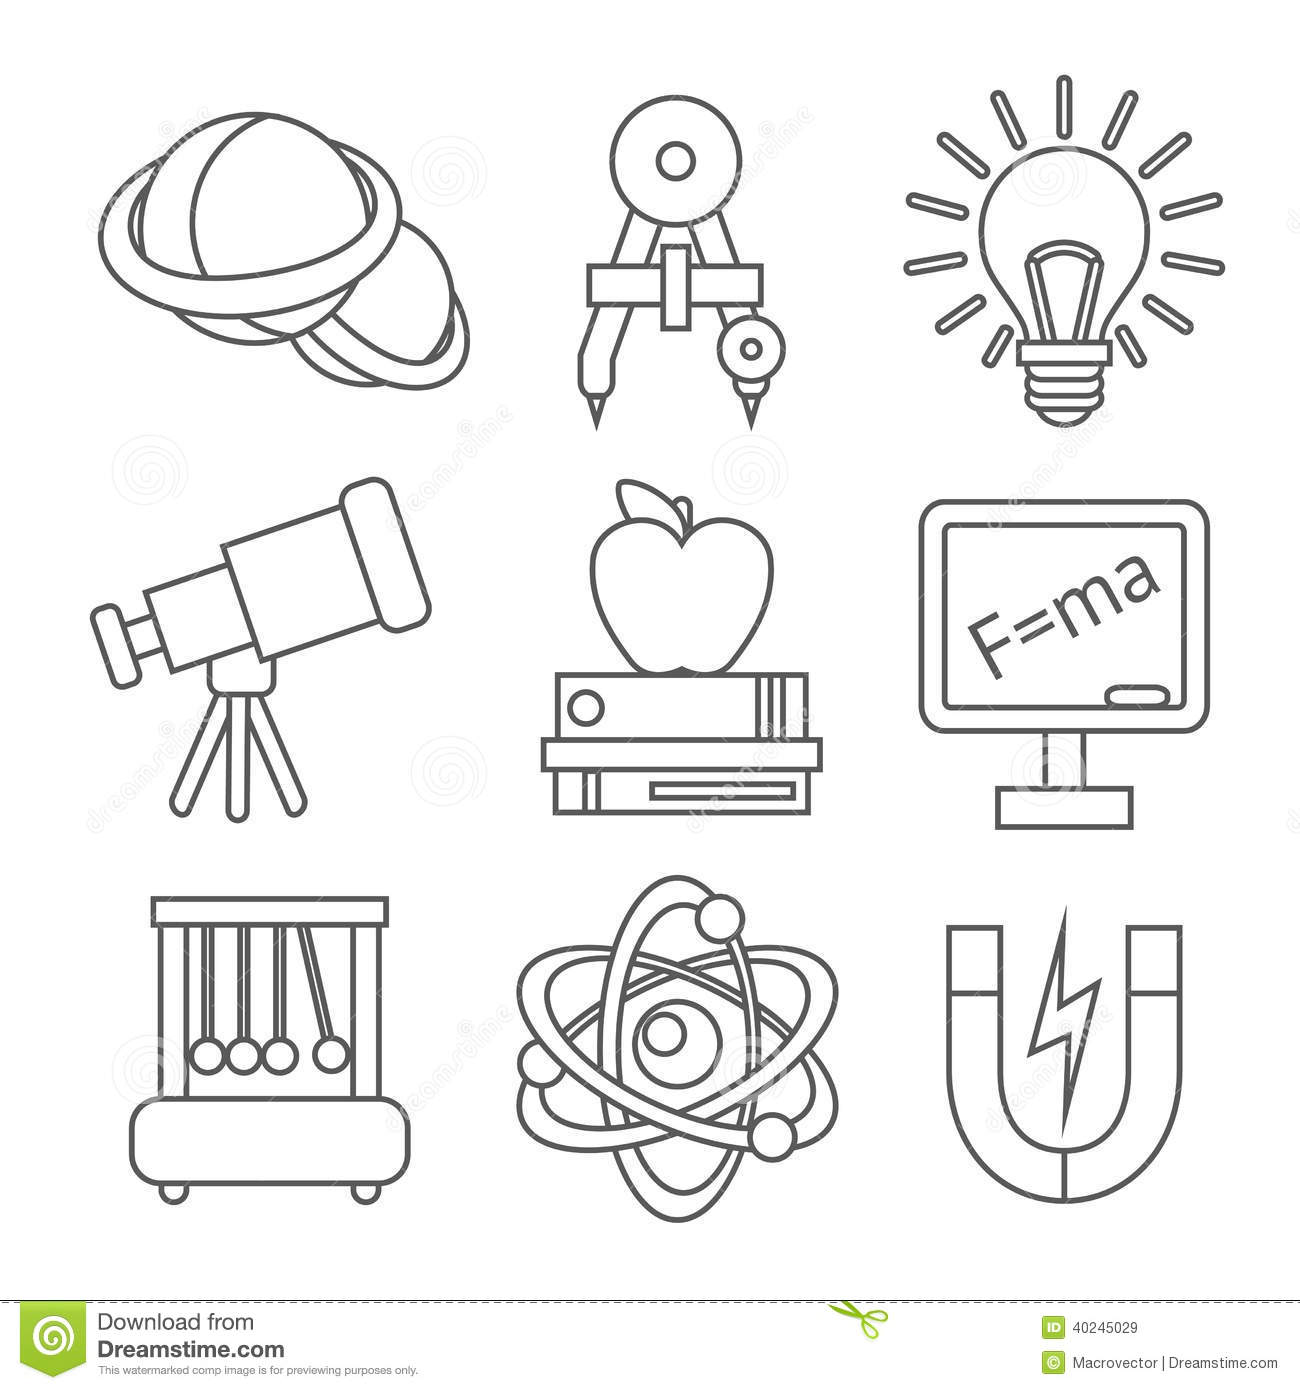 Physics Science Icons stock vector. Image of blackboard